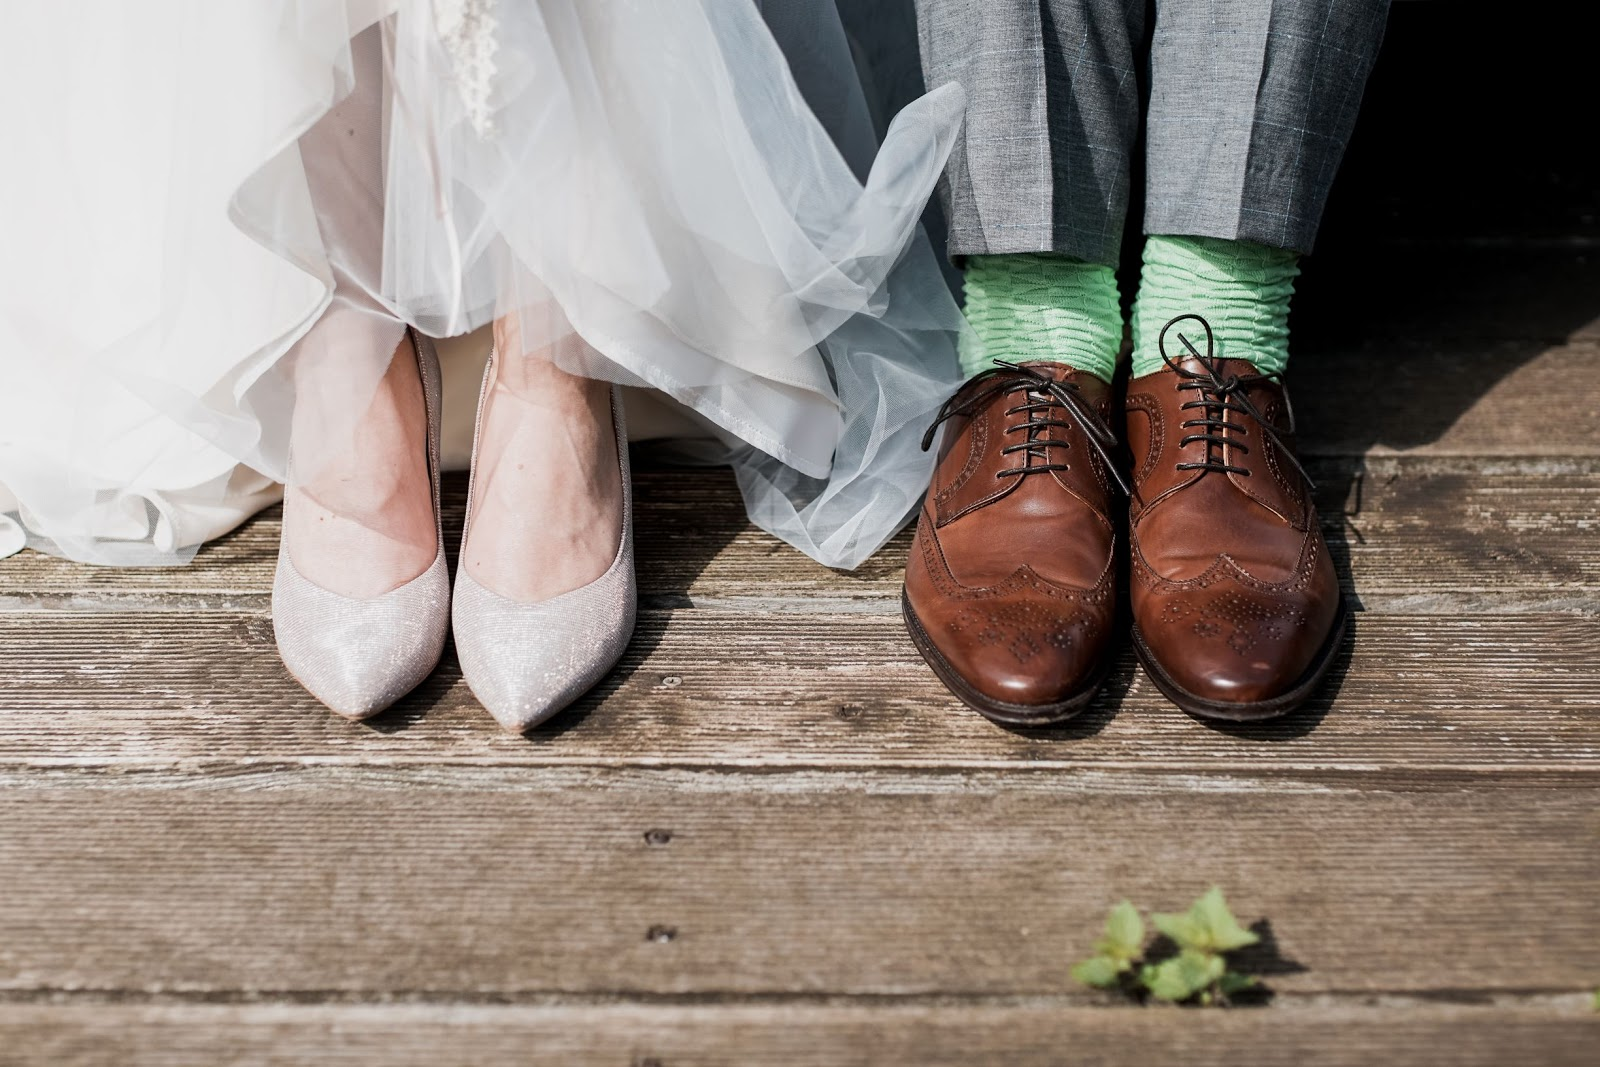 Pair of female and male shoes